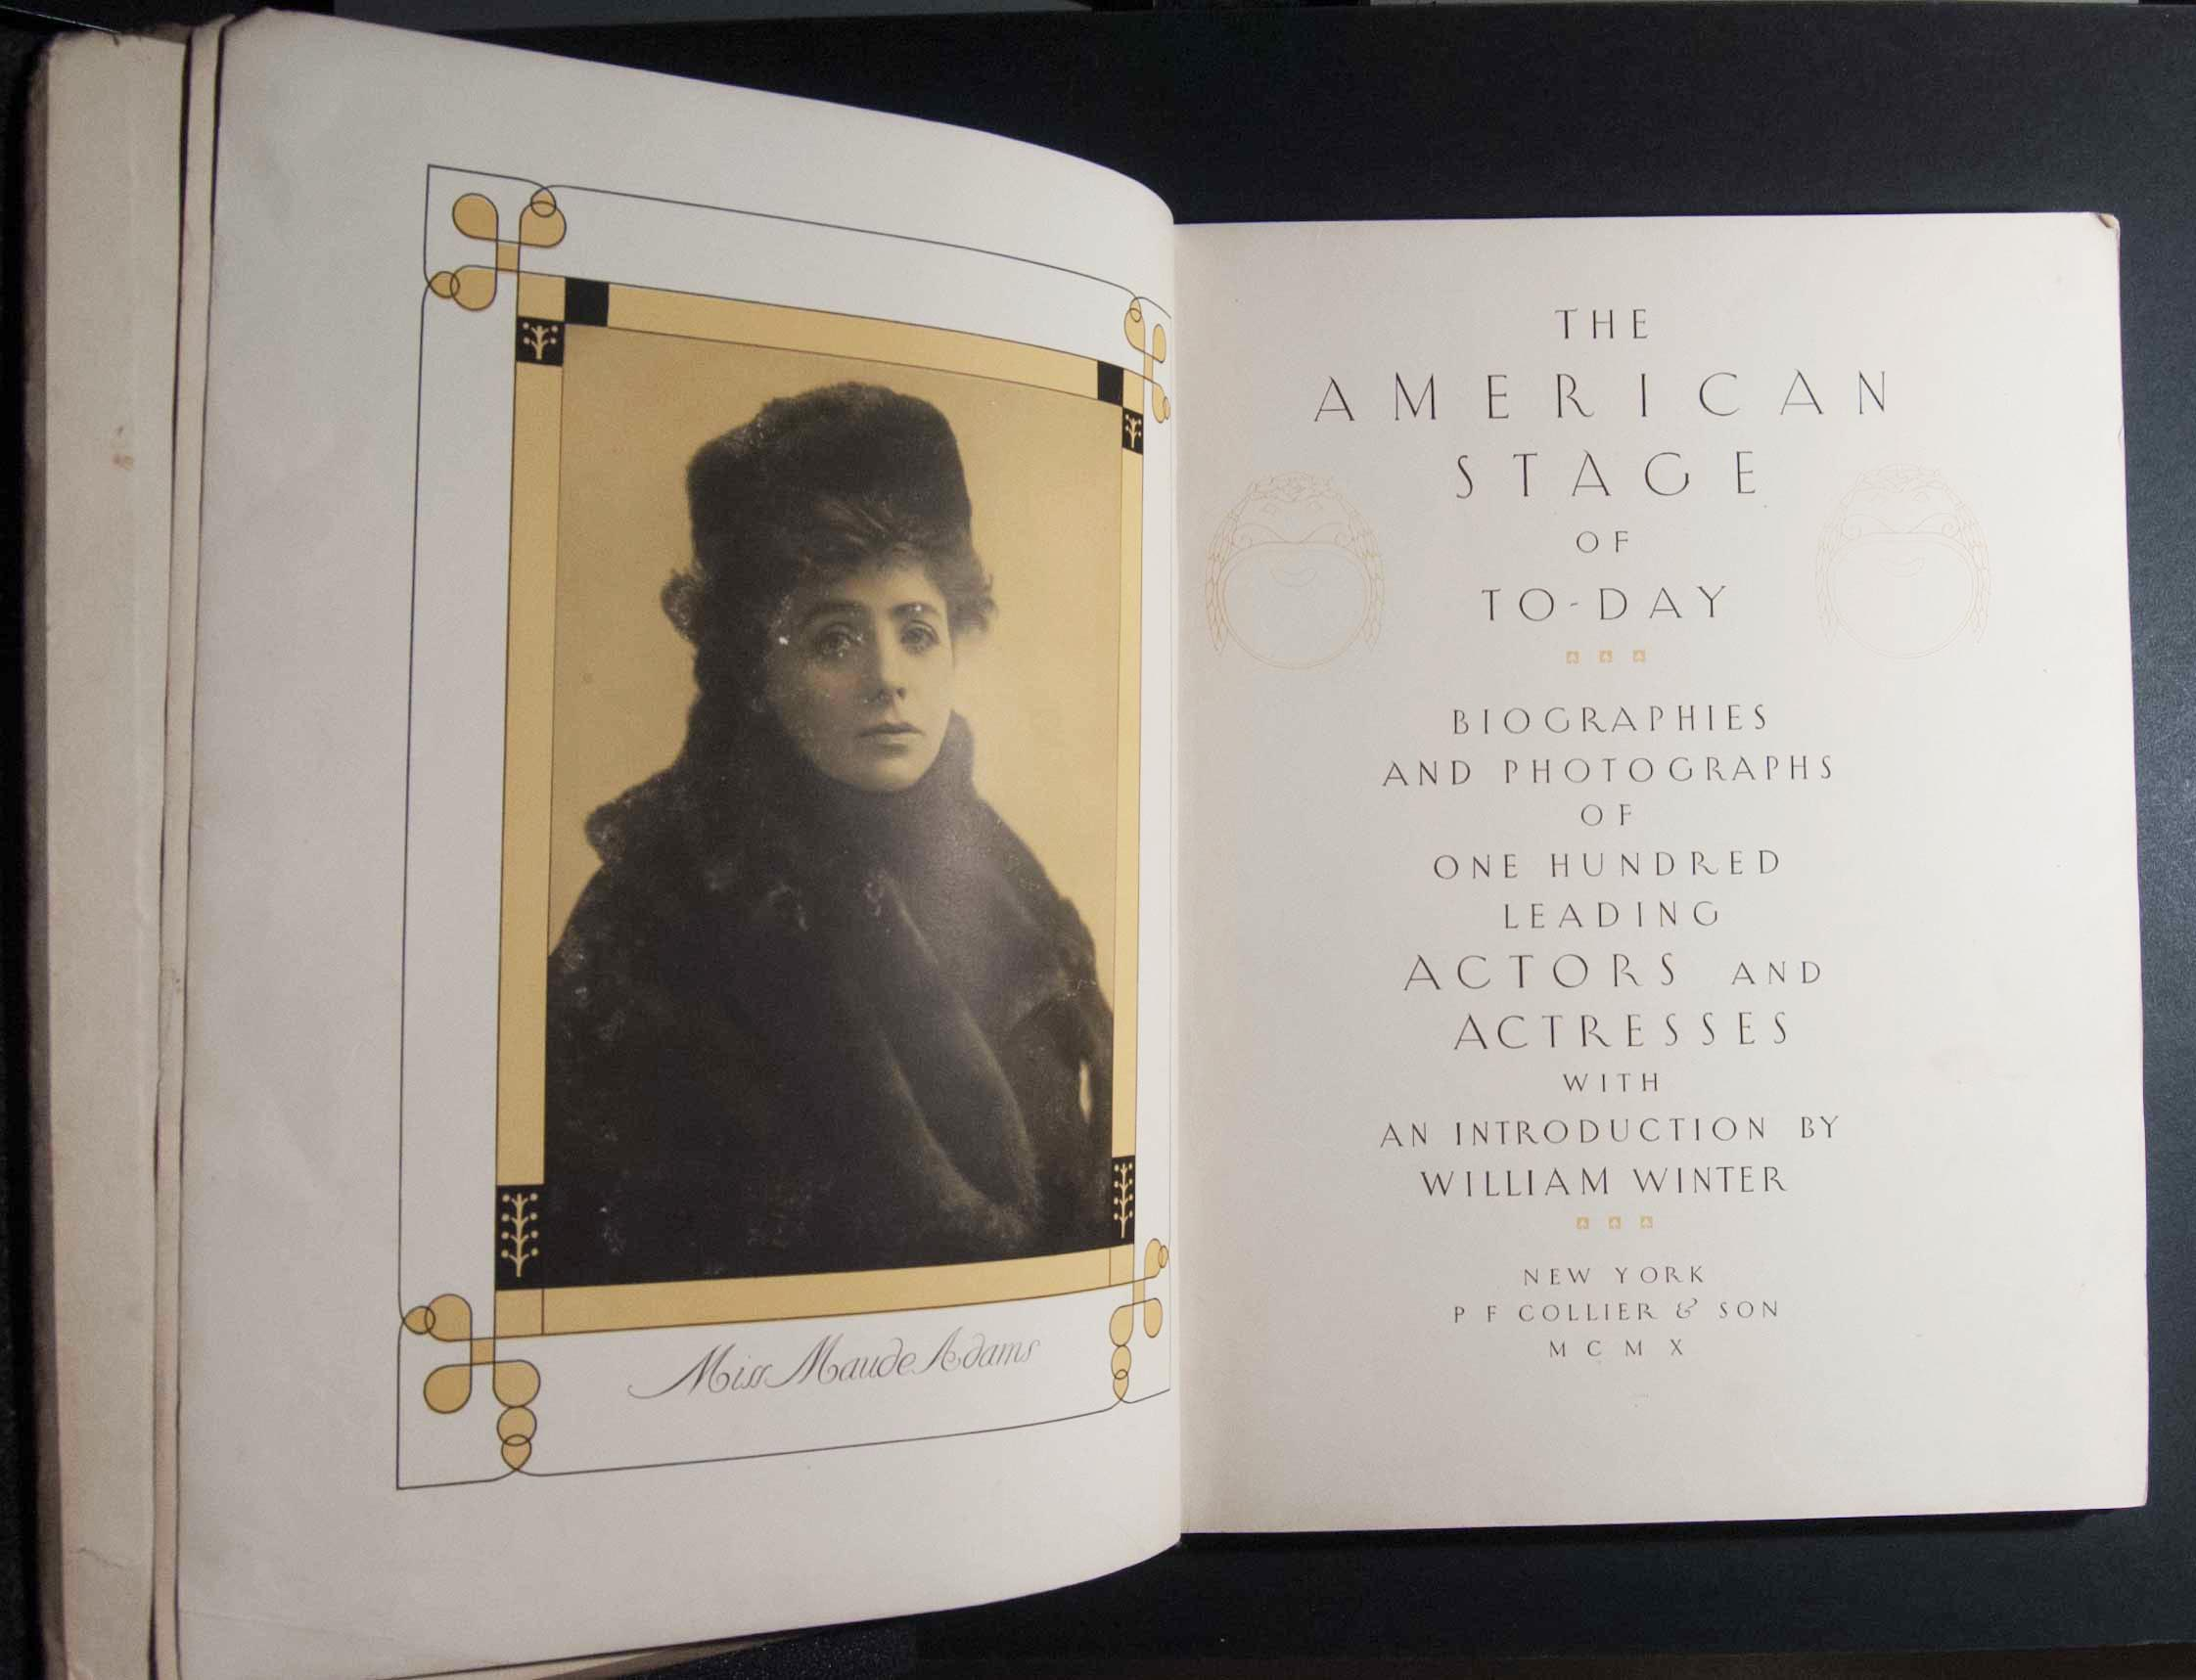 The American Stage of To-Day: Biographies and Photographs of One Hundred Leading Actors and Actresses